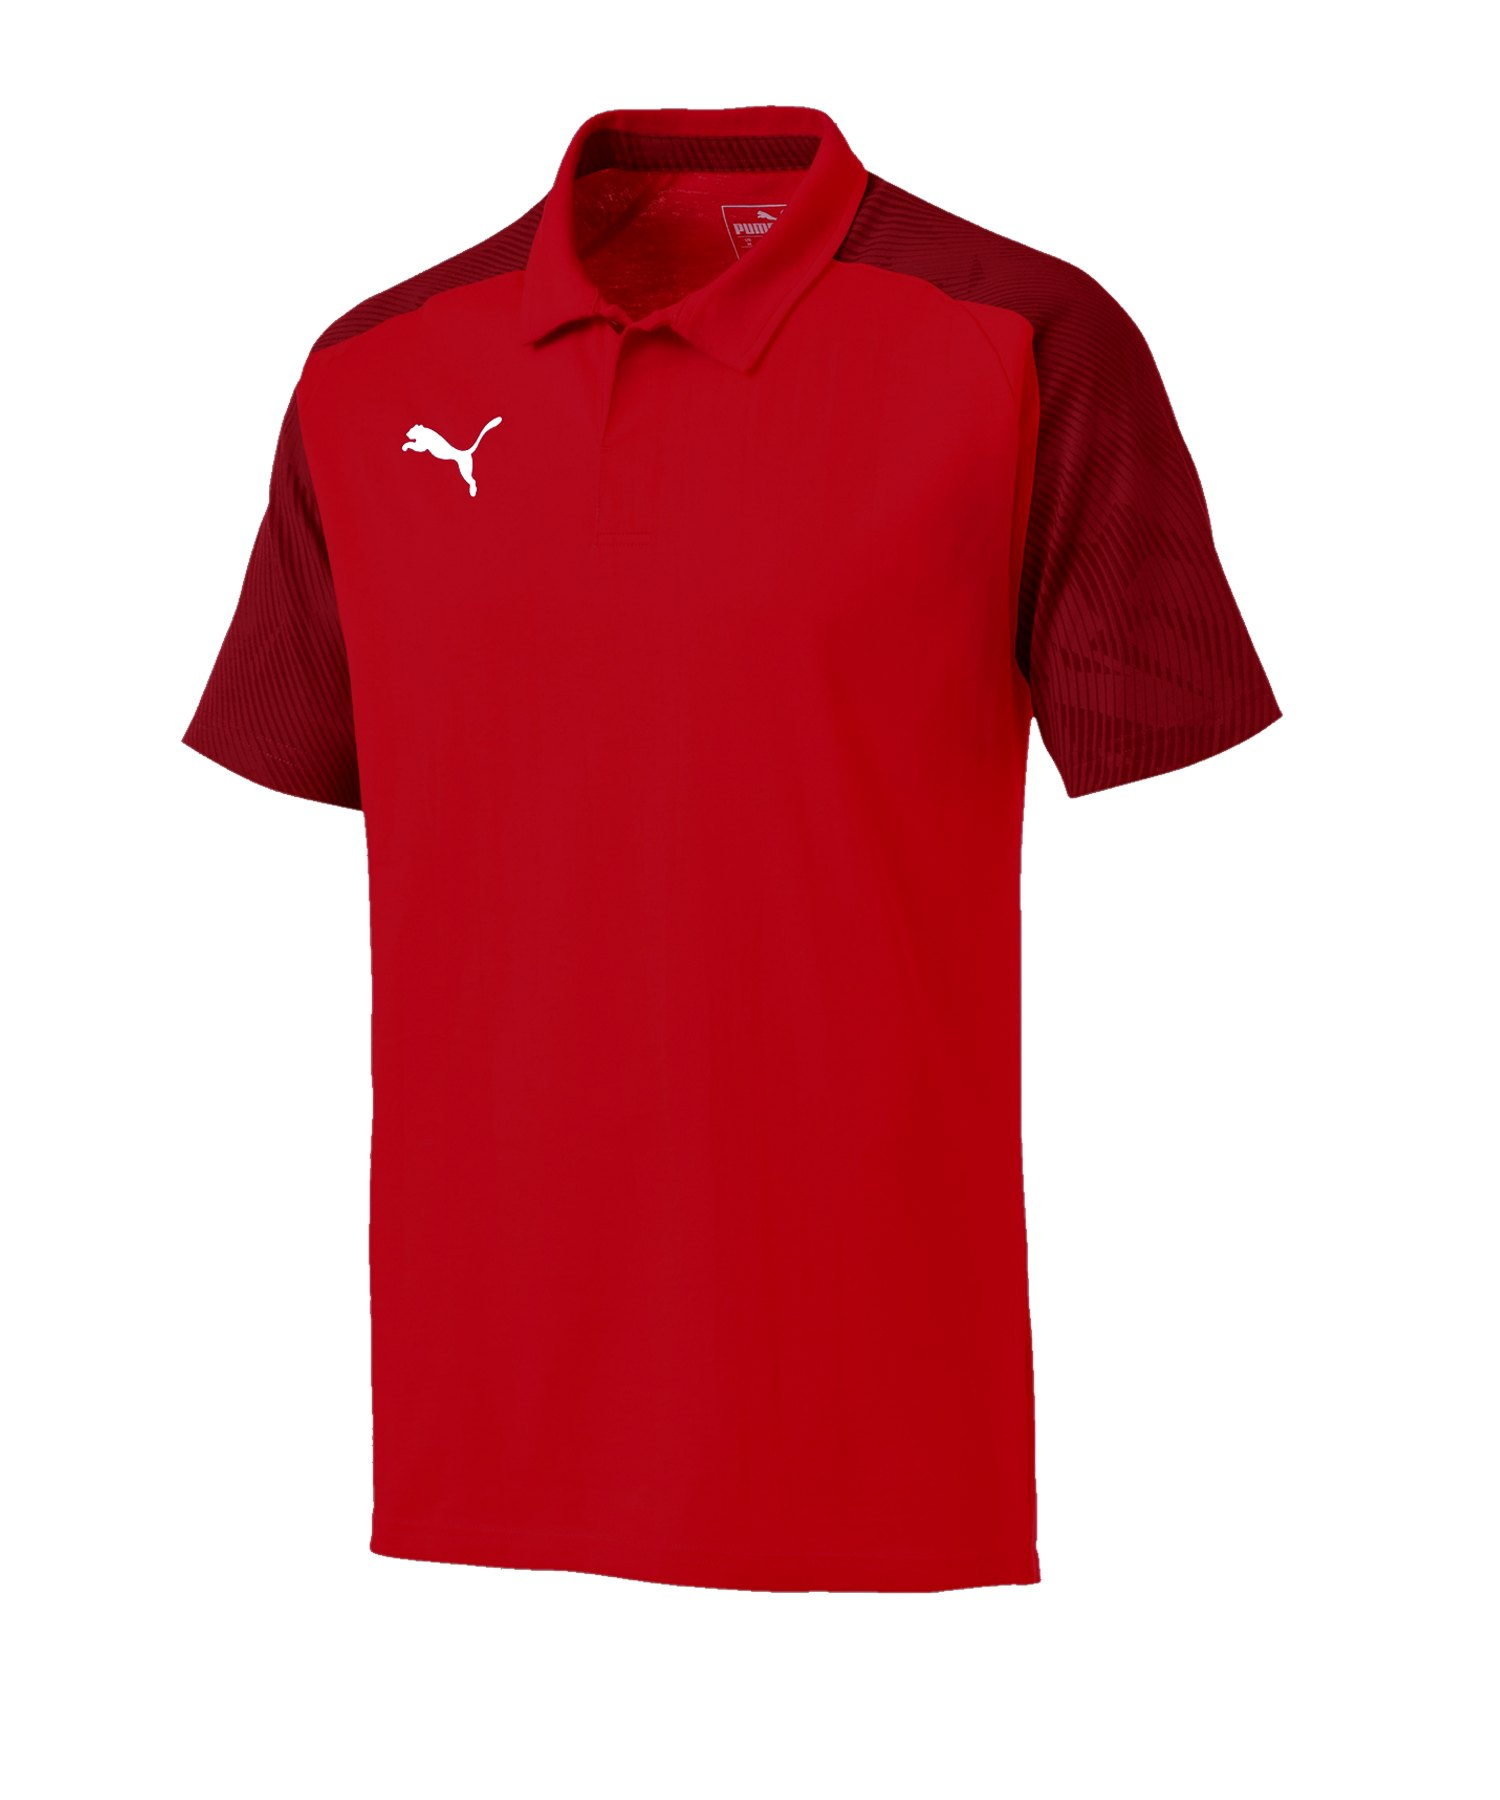 PUMA CUP Sideline Poloshirt Rot F01 - rot